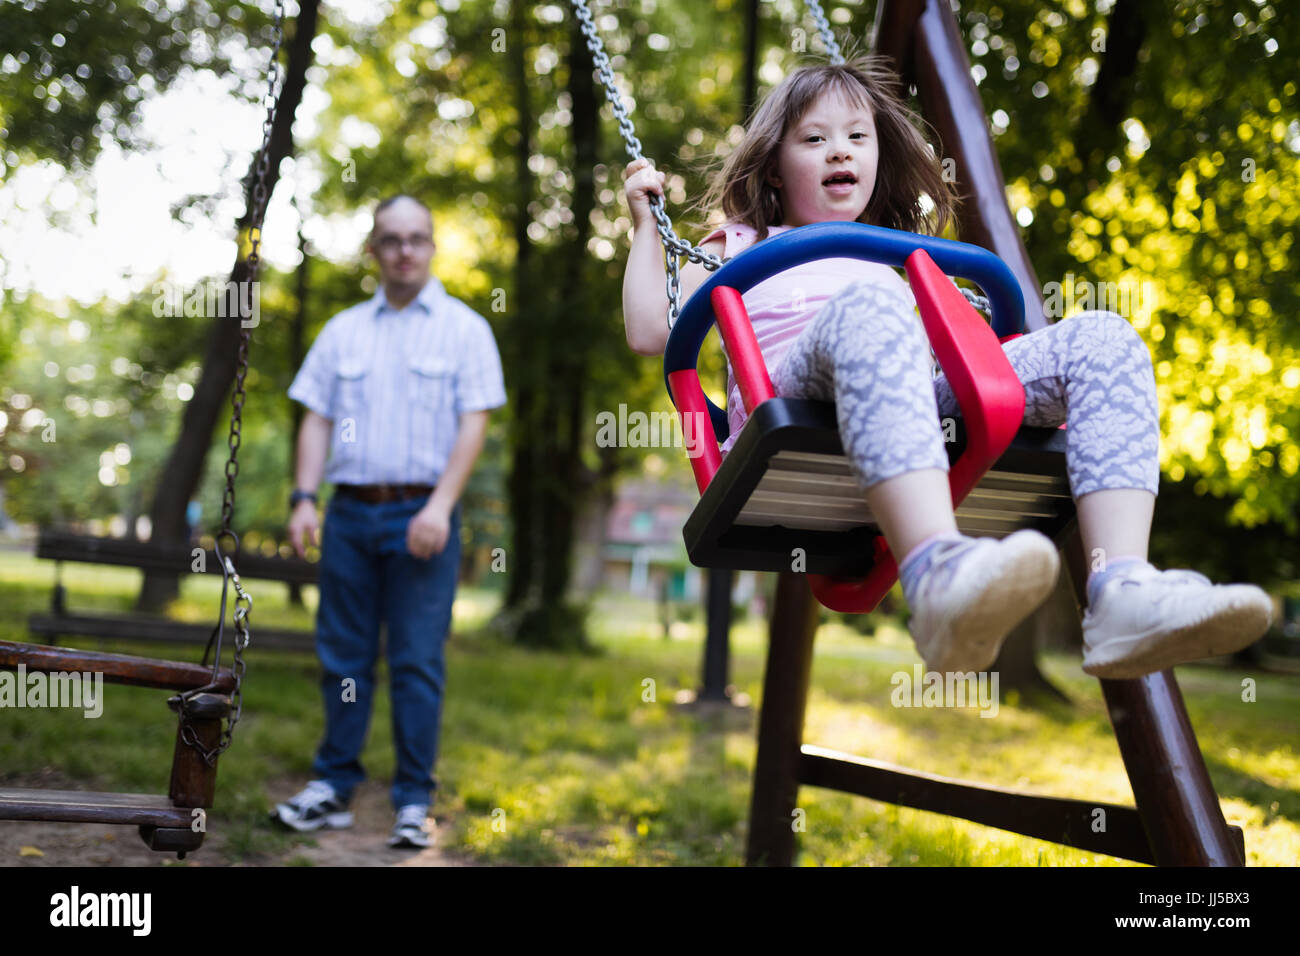 Portrait of young girl with down syndrome - Stock Image